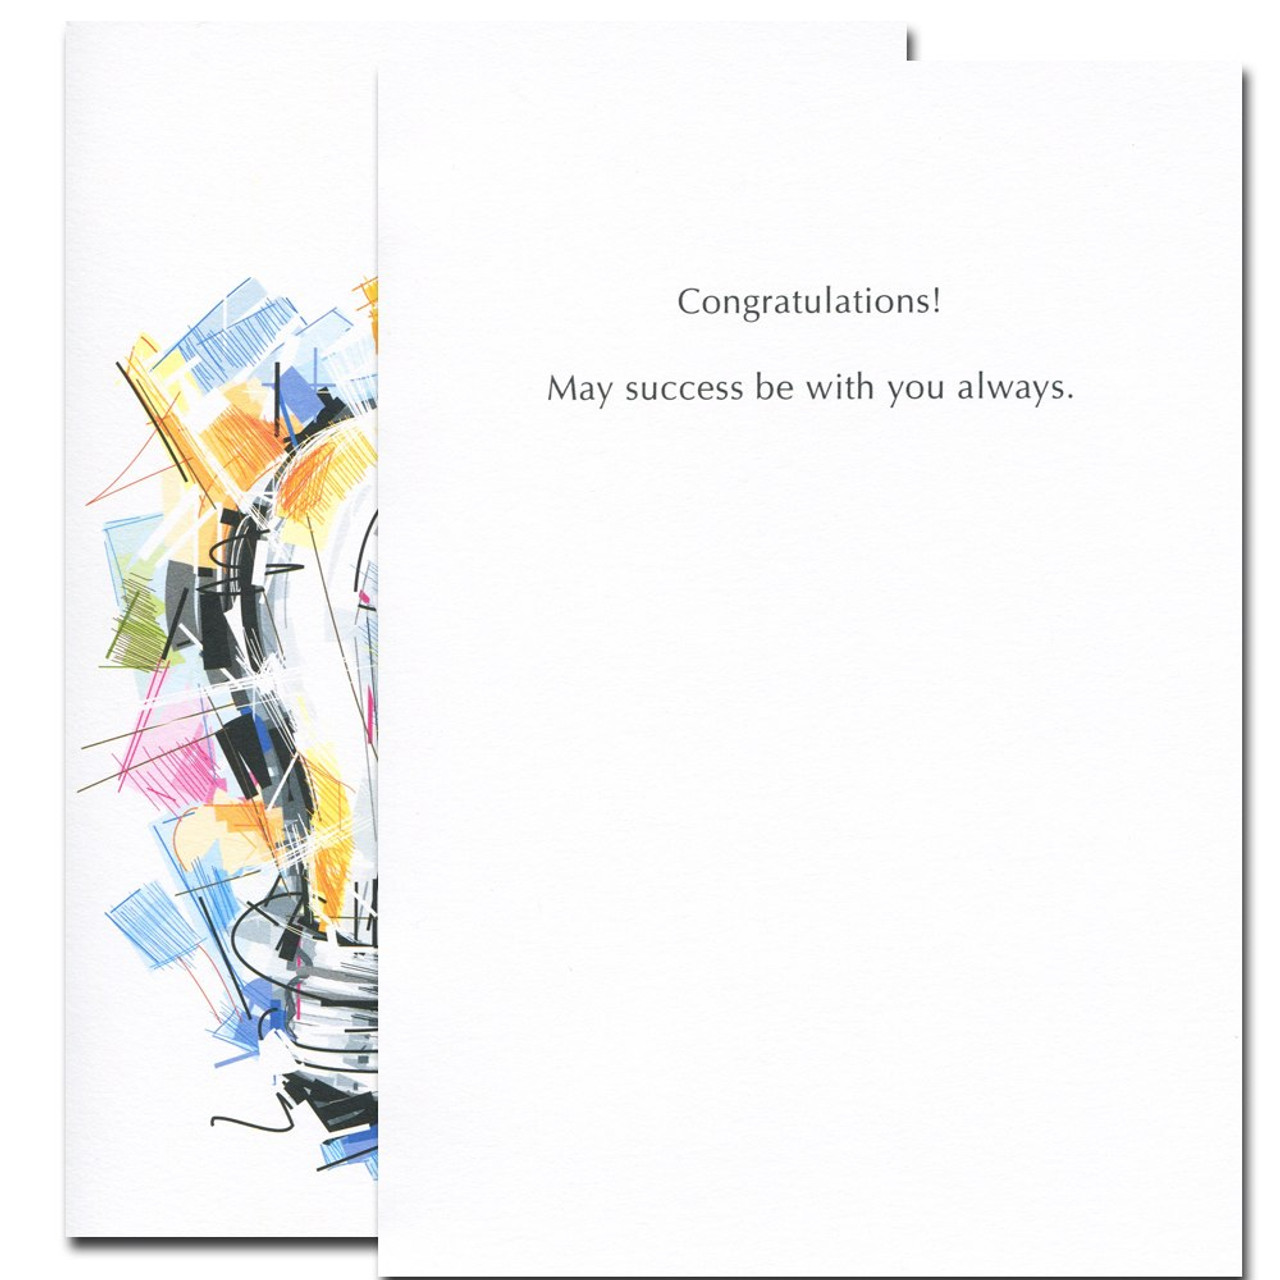 Inside of Brilliant Future Congratulations Card reads: Congratulations! May success be with you always.